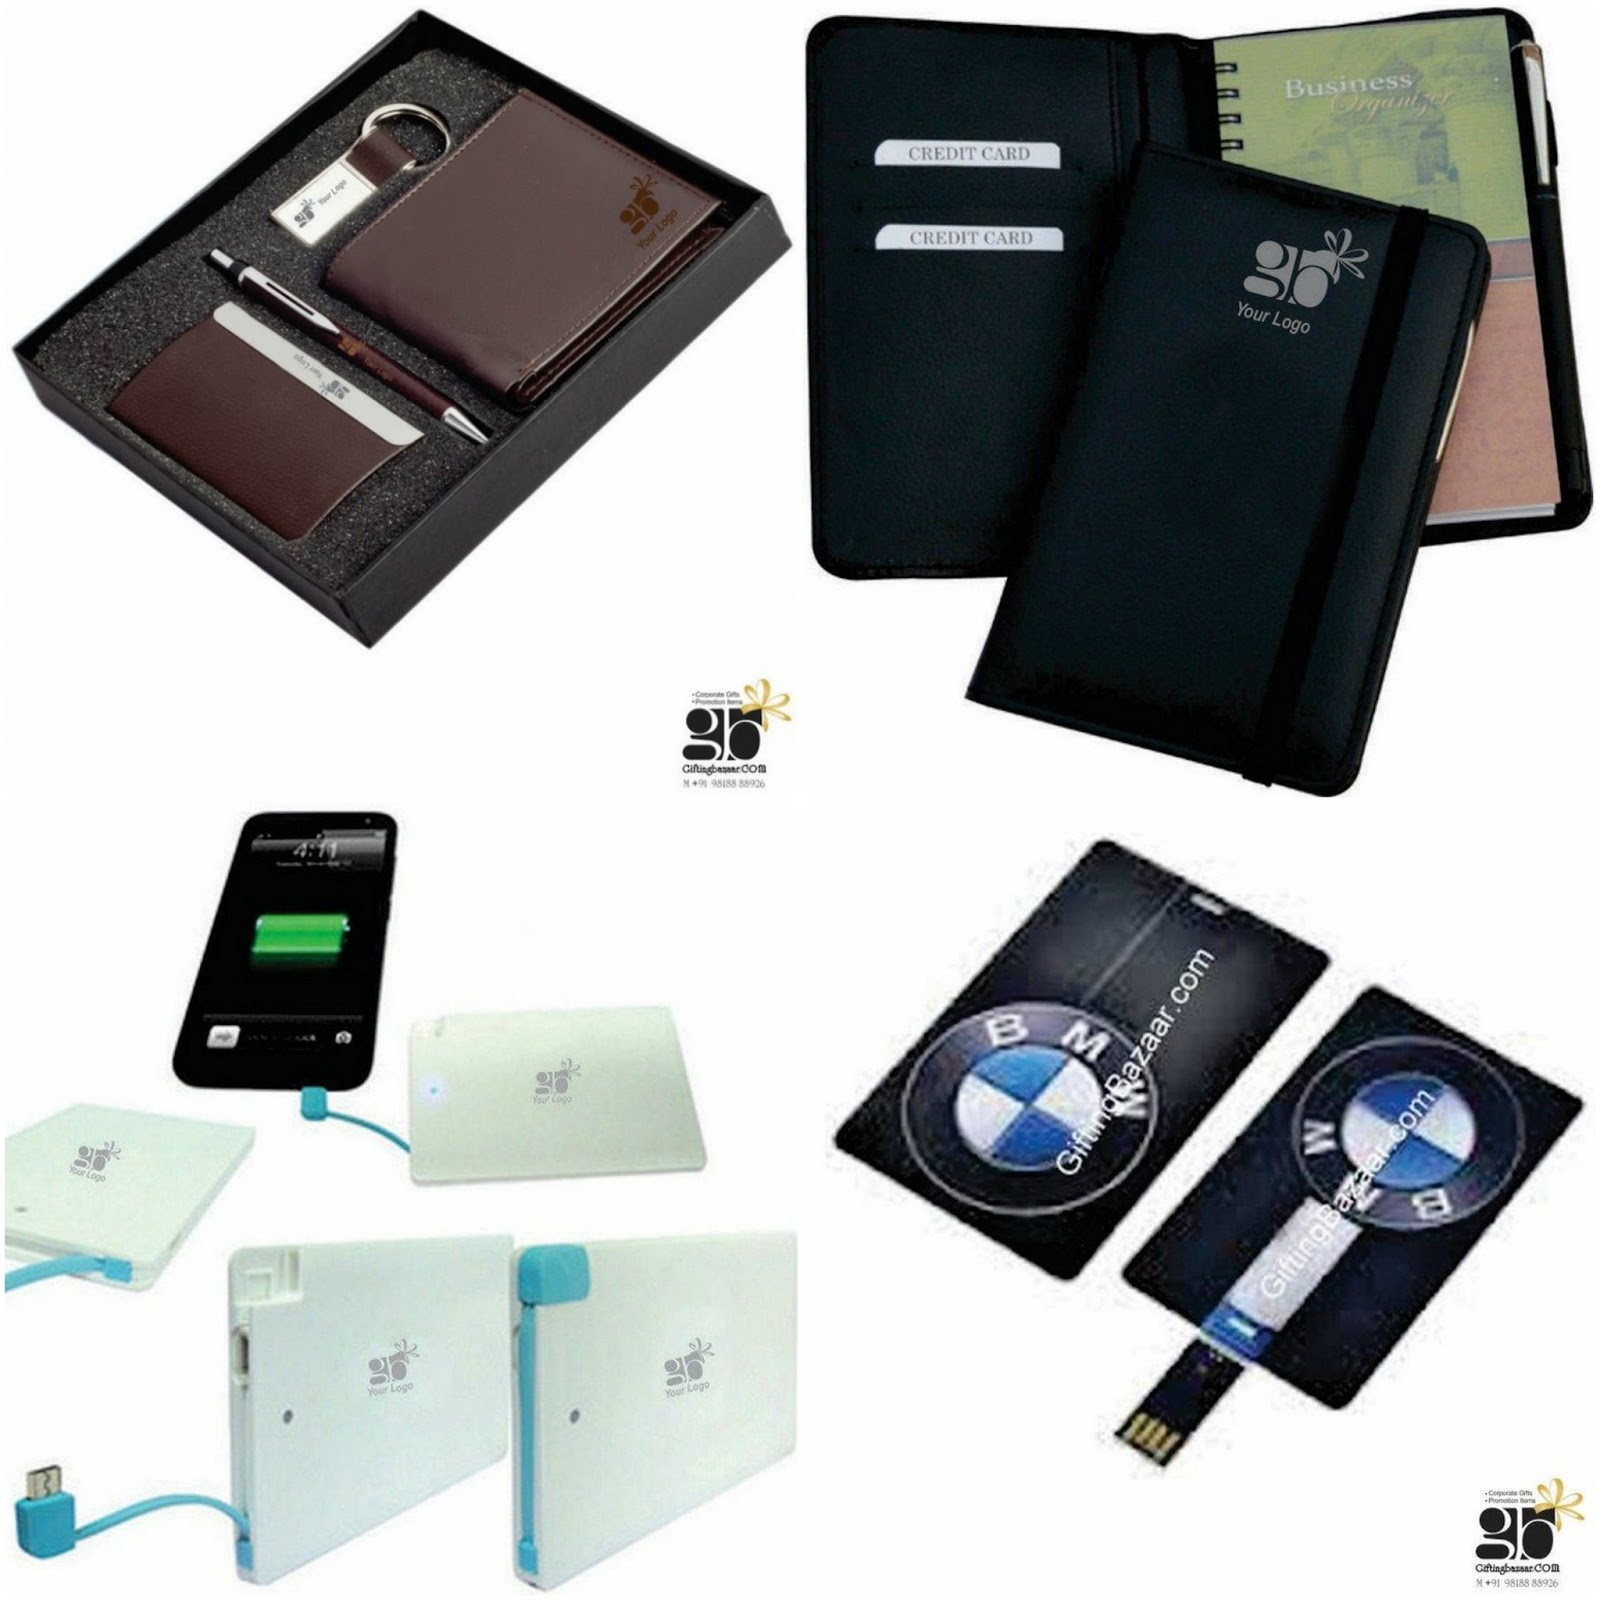 Latest Corporate gift - For Corporate Gifts in Delhi, Noida